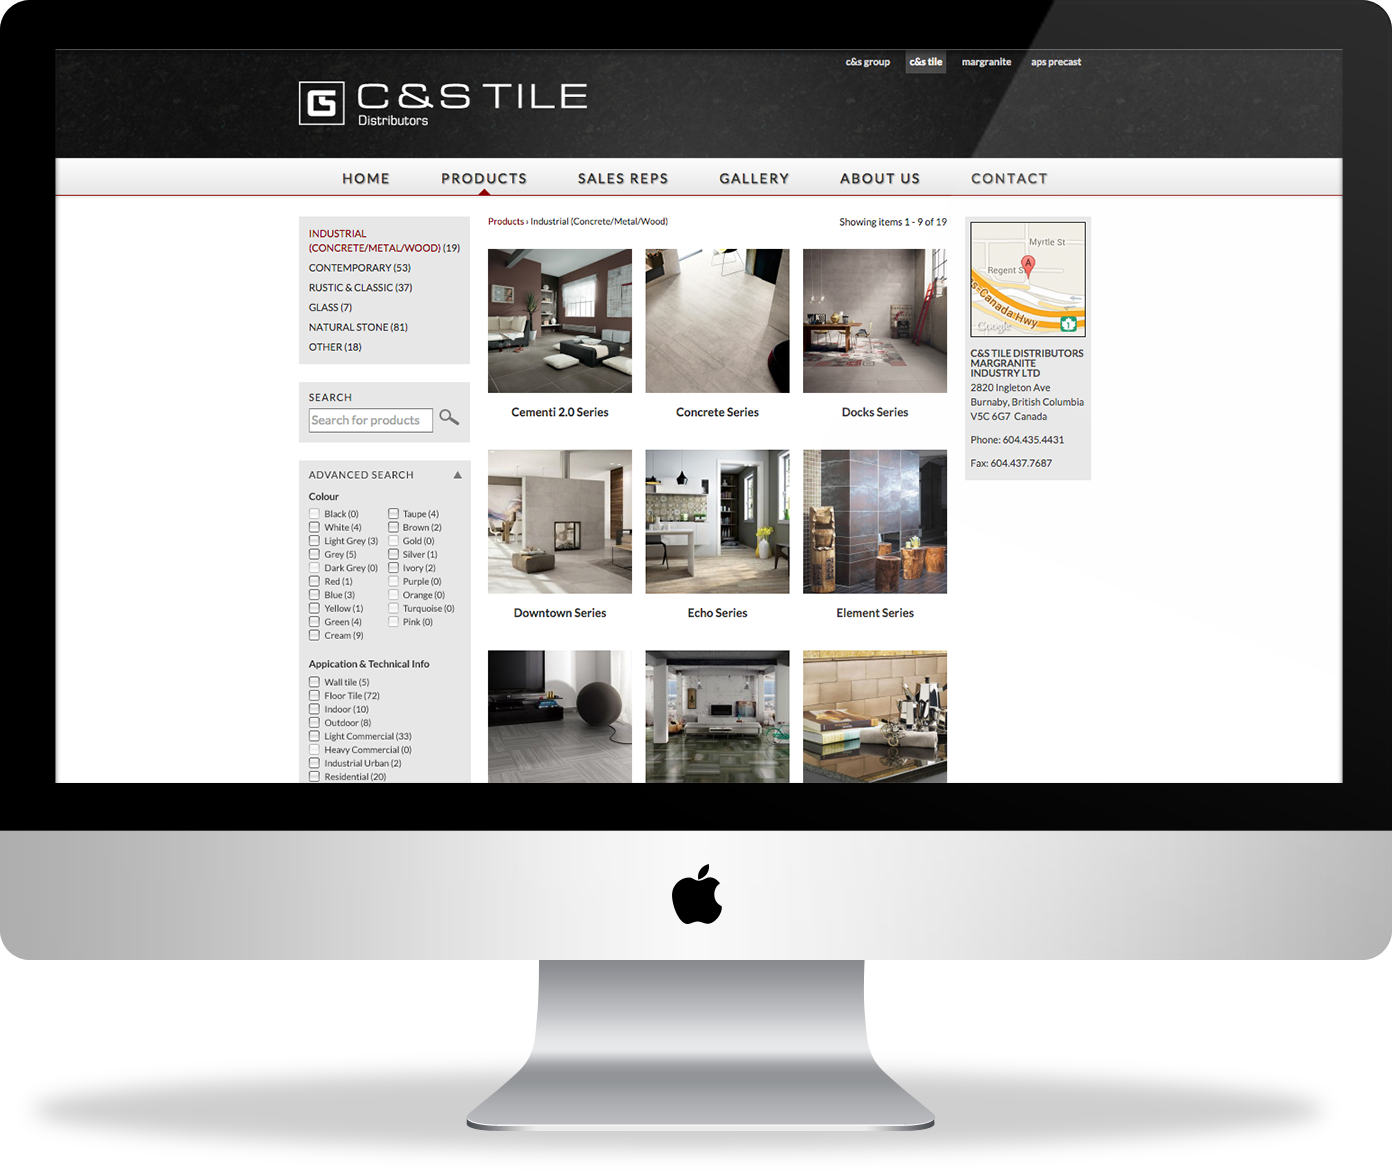 C&S Tile website - catalogue